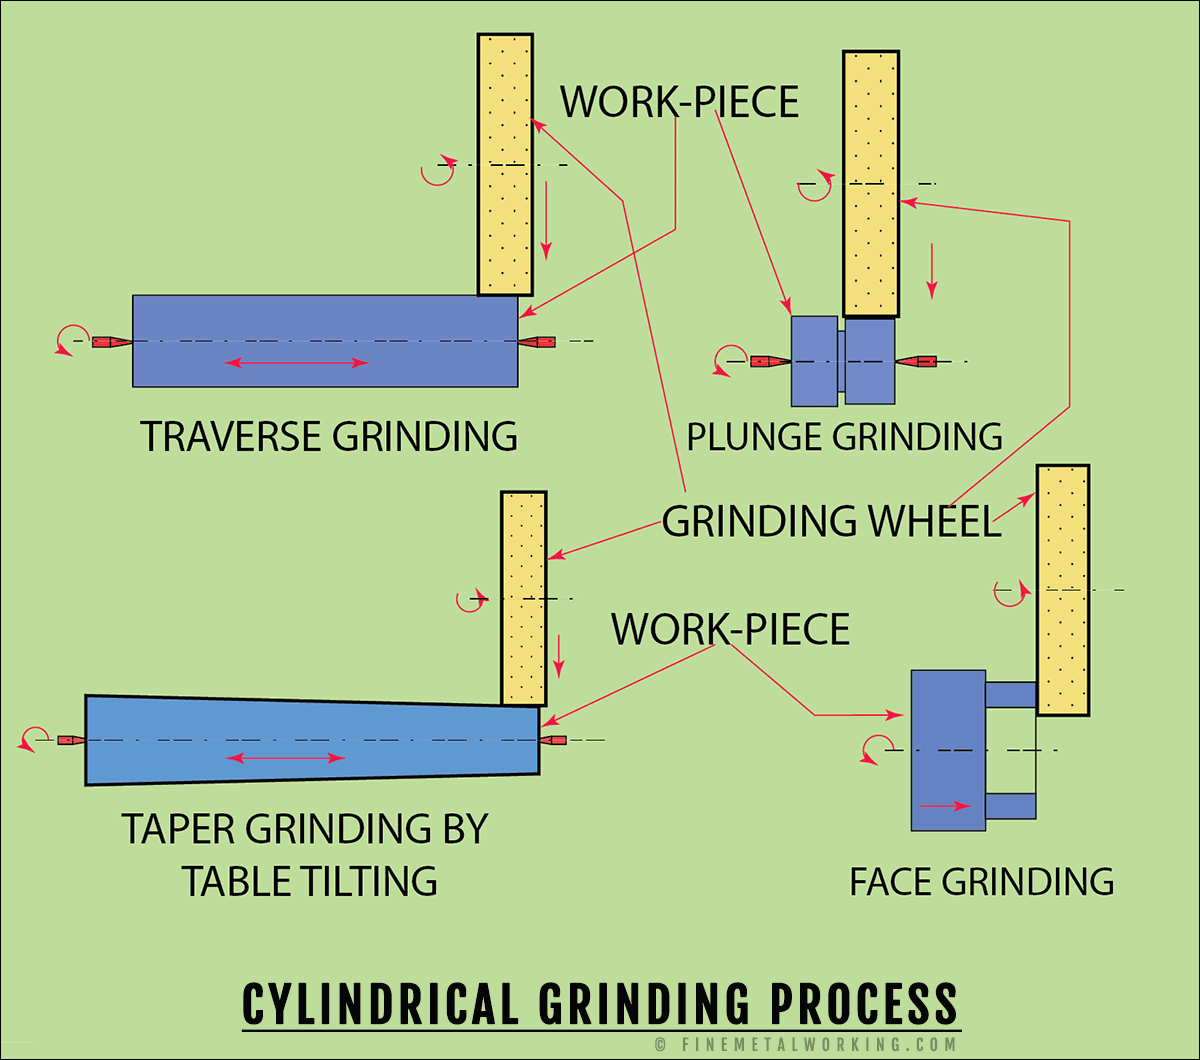 Cylindrical grinding process